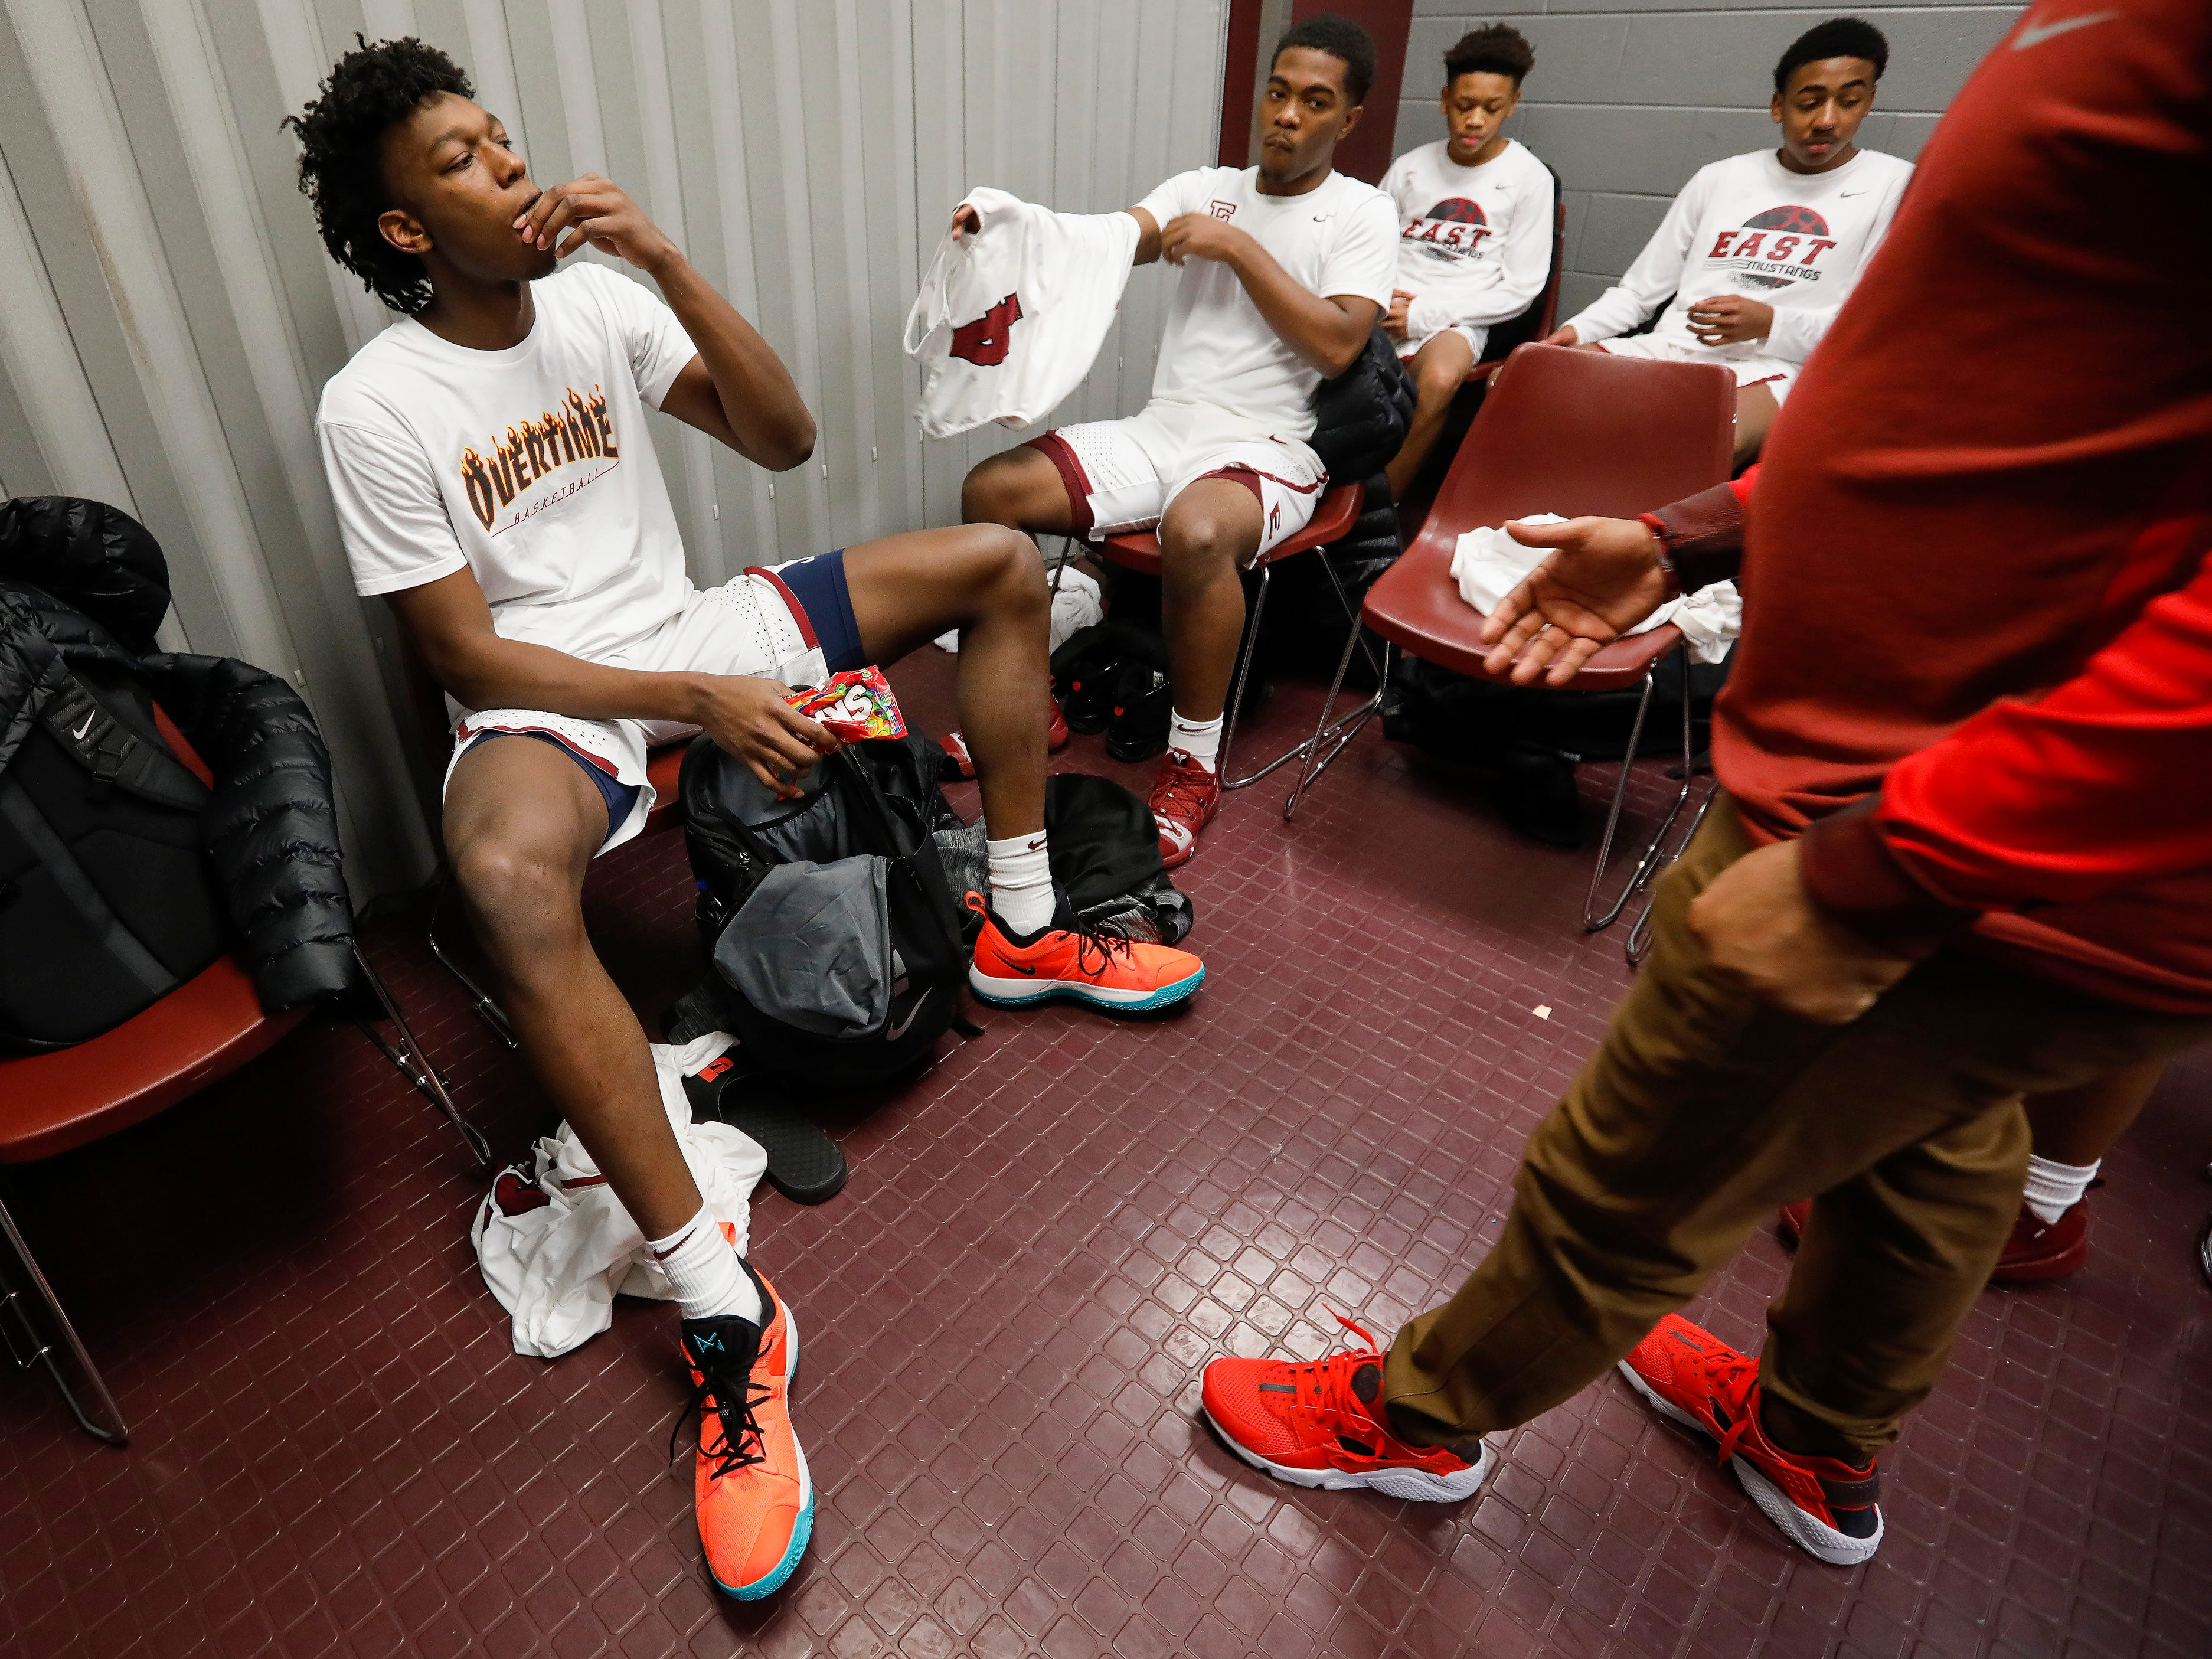 James Wiseman, left, of Memphis East High School, eats a hand full of Skittles in the locker room at JQH Arena for the Bass Pro Shops Tournament of Champions on Thursday, Jan. 17, 2019.